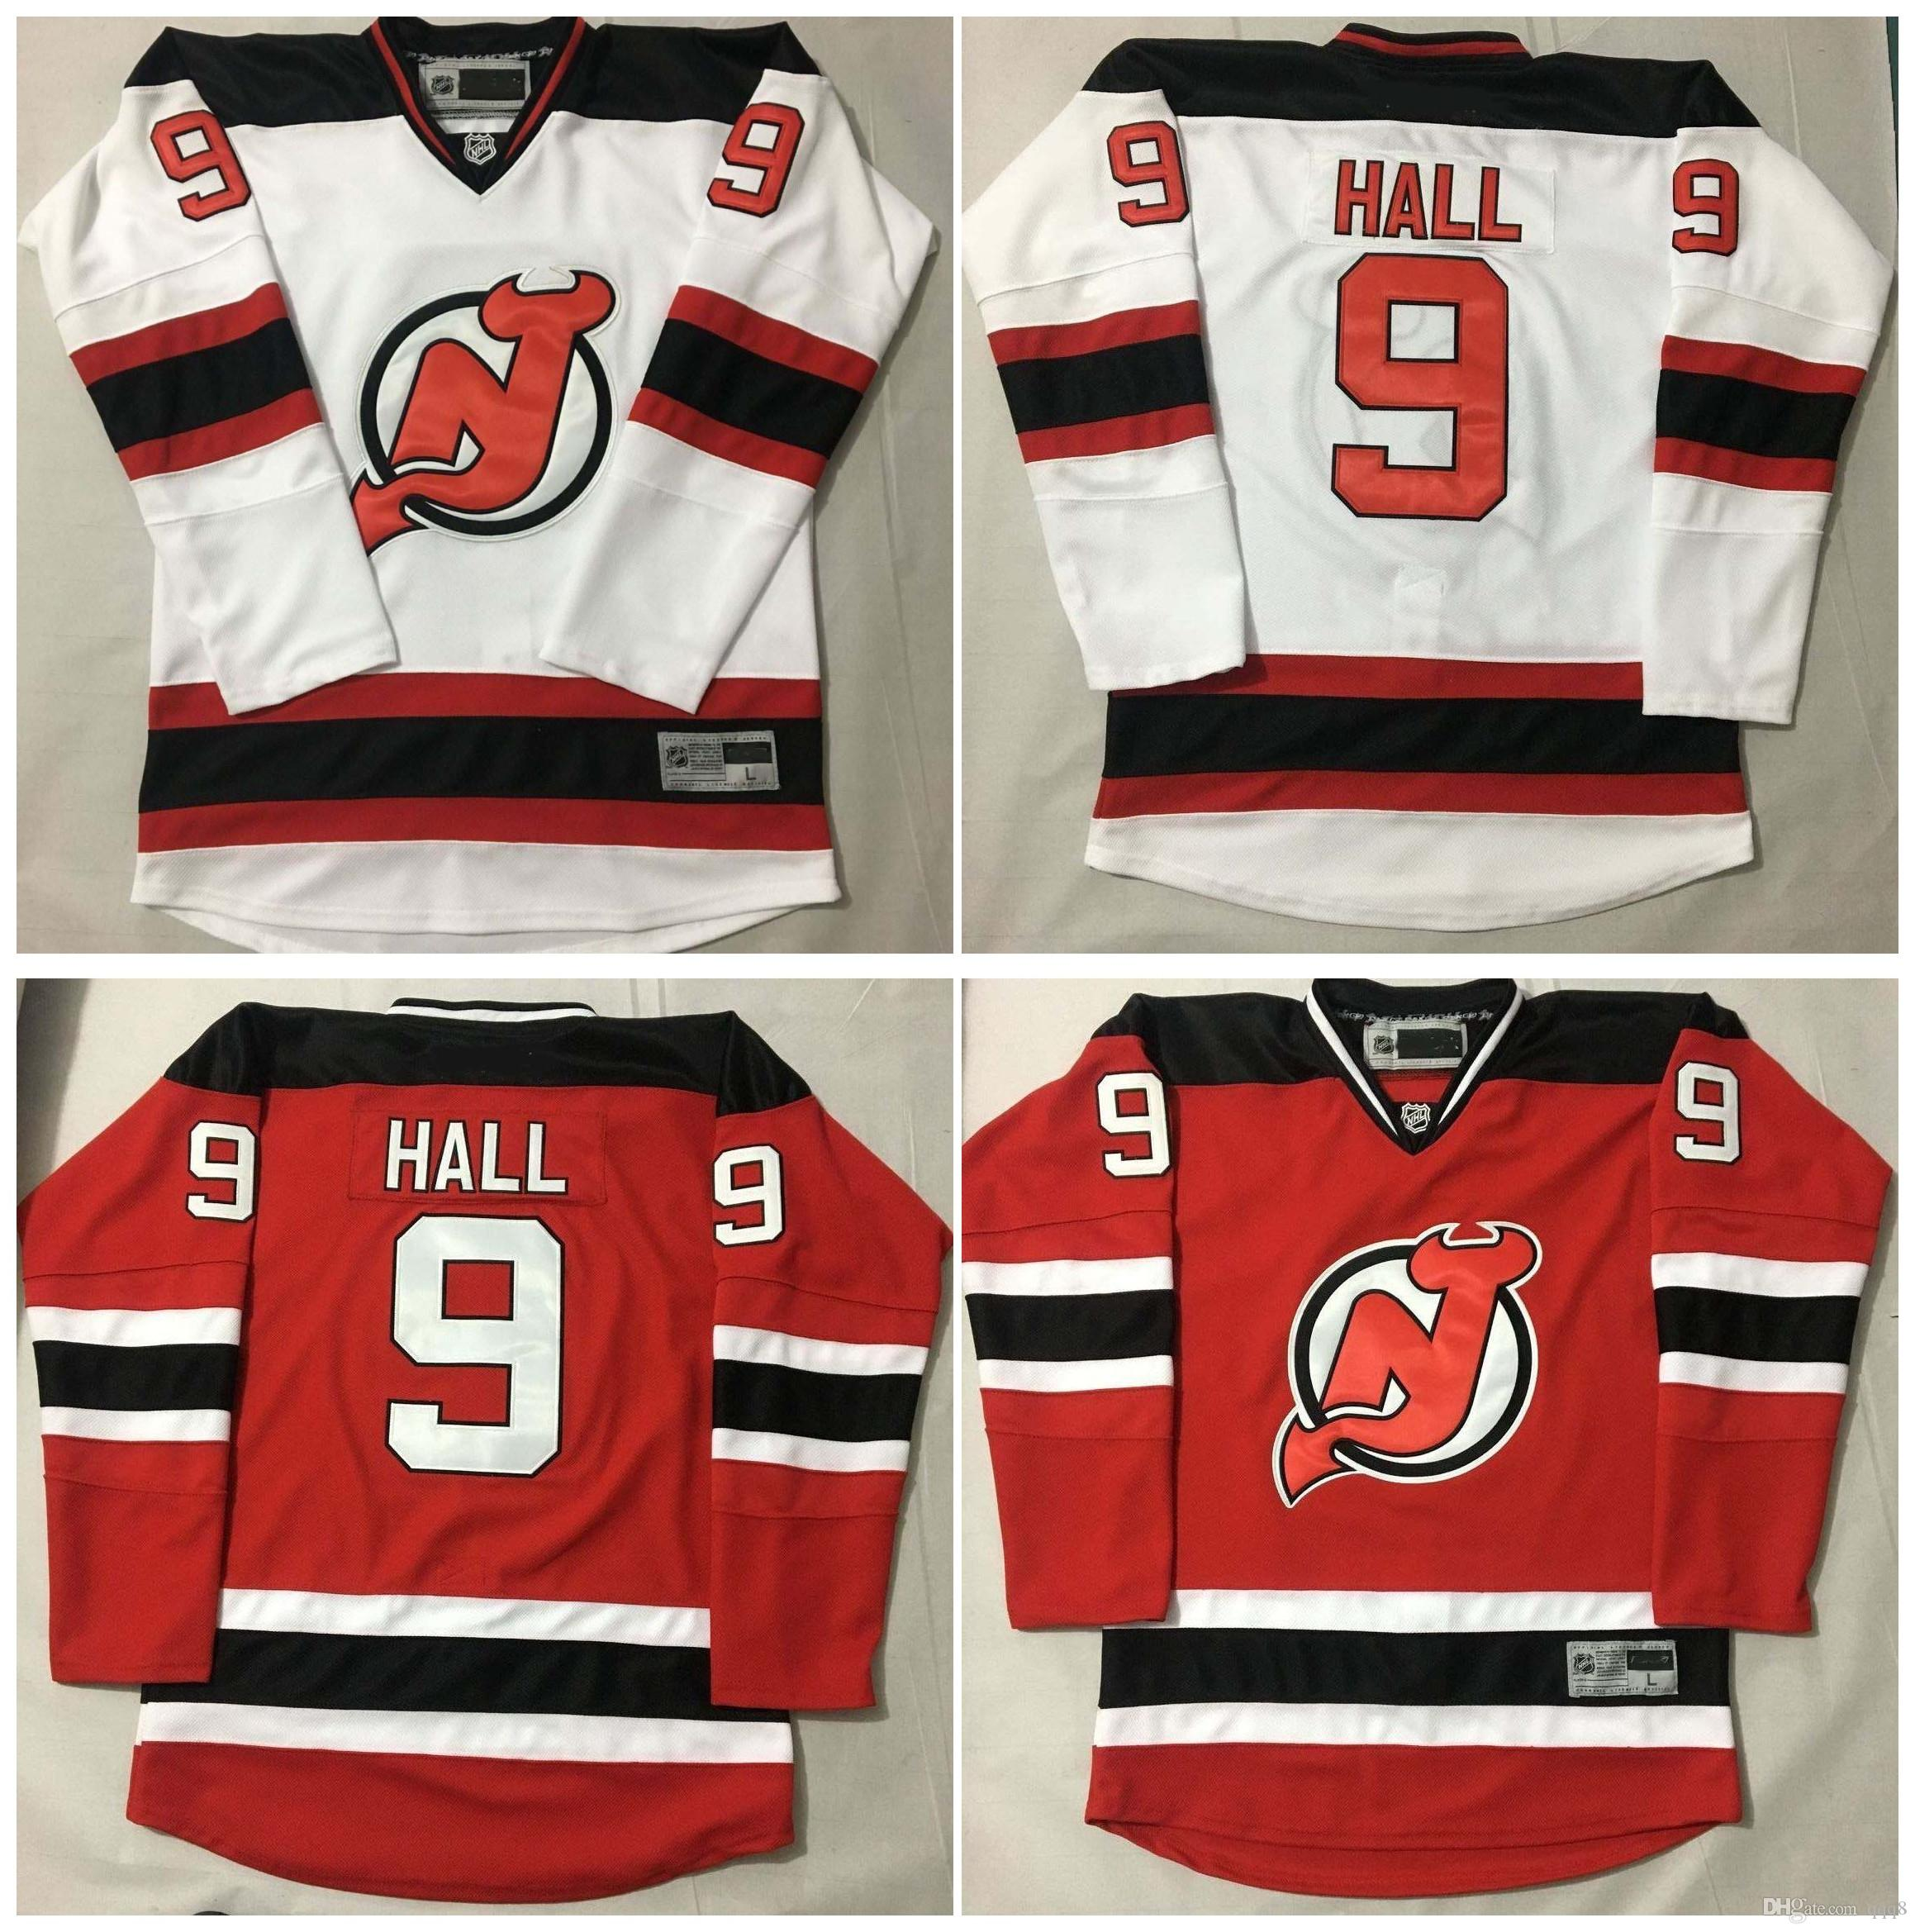 brand new 17aa1 06351 Top Quality ! 2016 Men New Jersey Devils Hockey Jerseys Cheap #9 Taylor  Hall Jersey White Red Authentic Stitched Jerseys Mix Order !